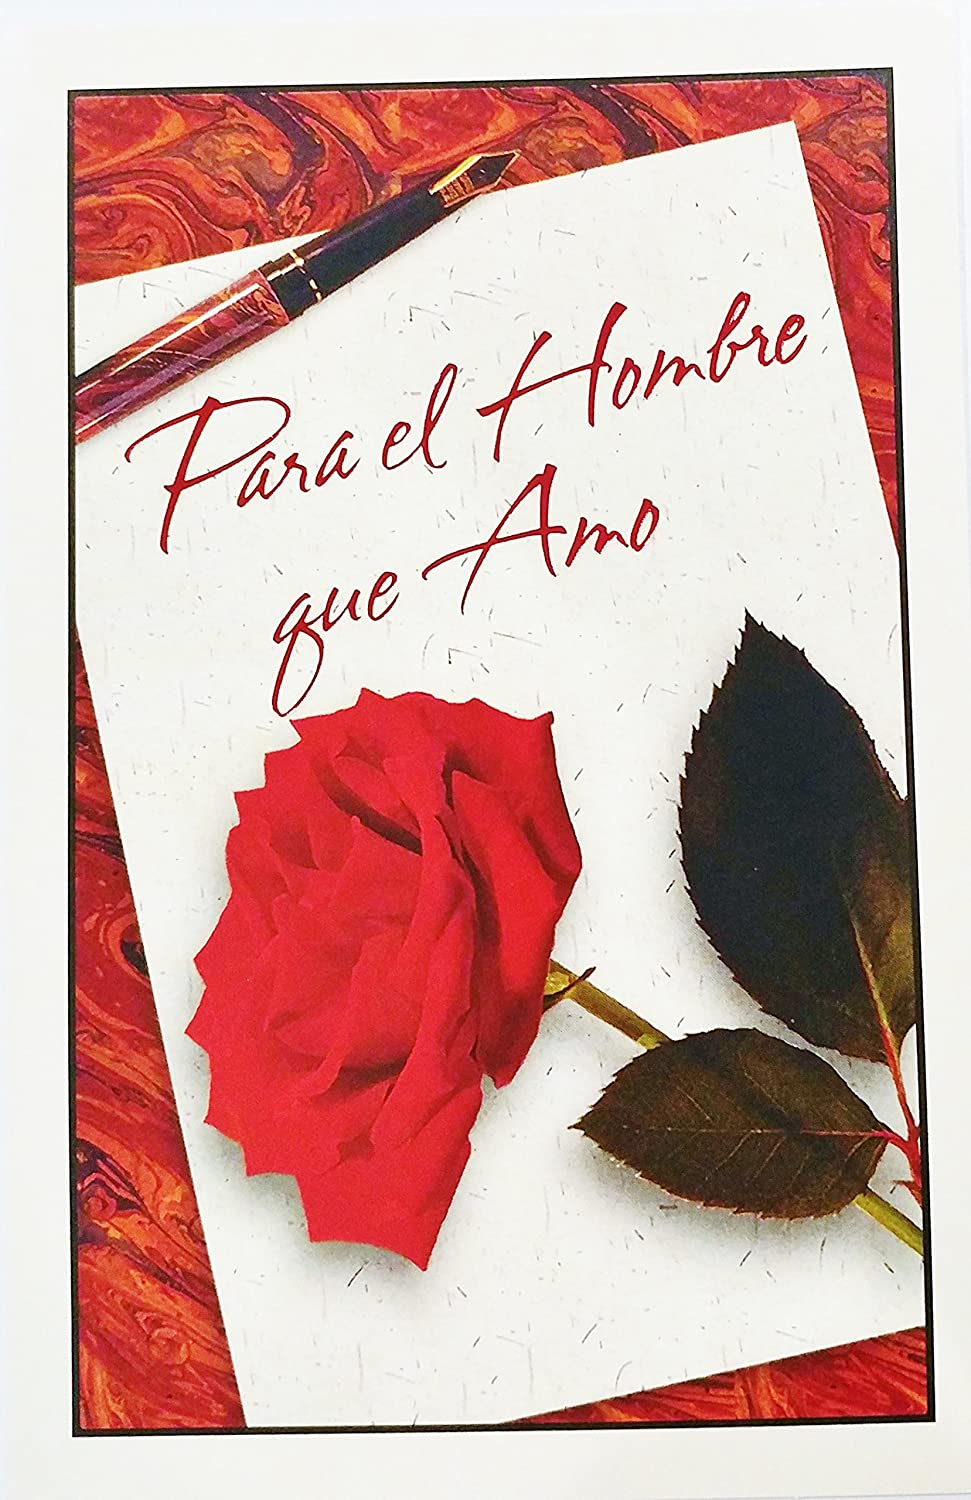 Amazon.com : Para el Hombre que Amo / For the Man I Love ...